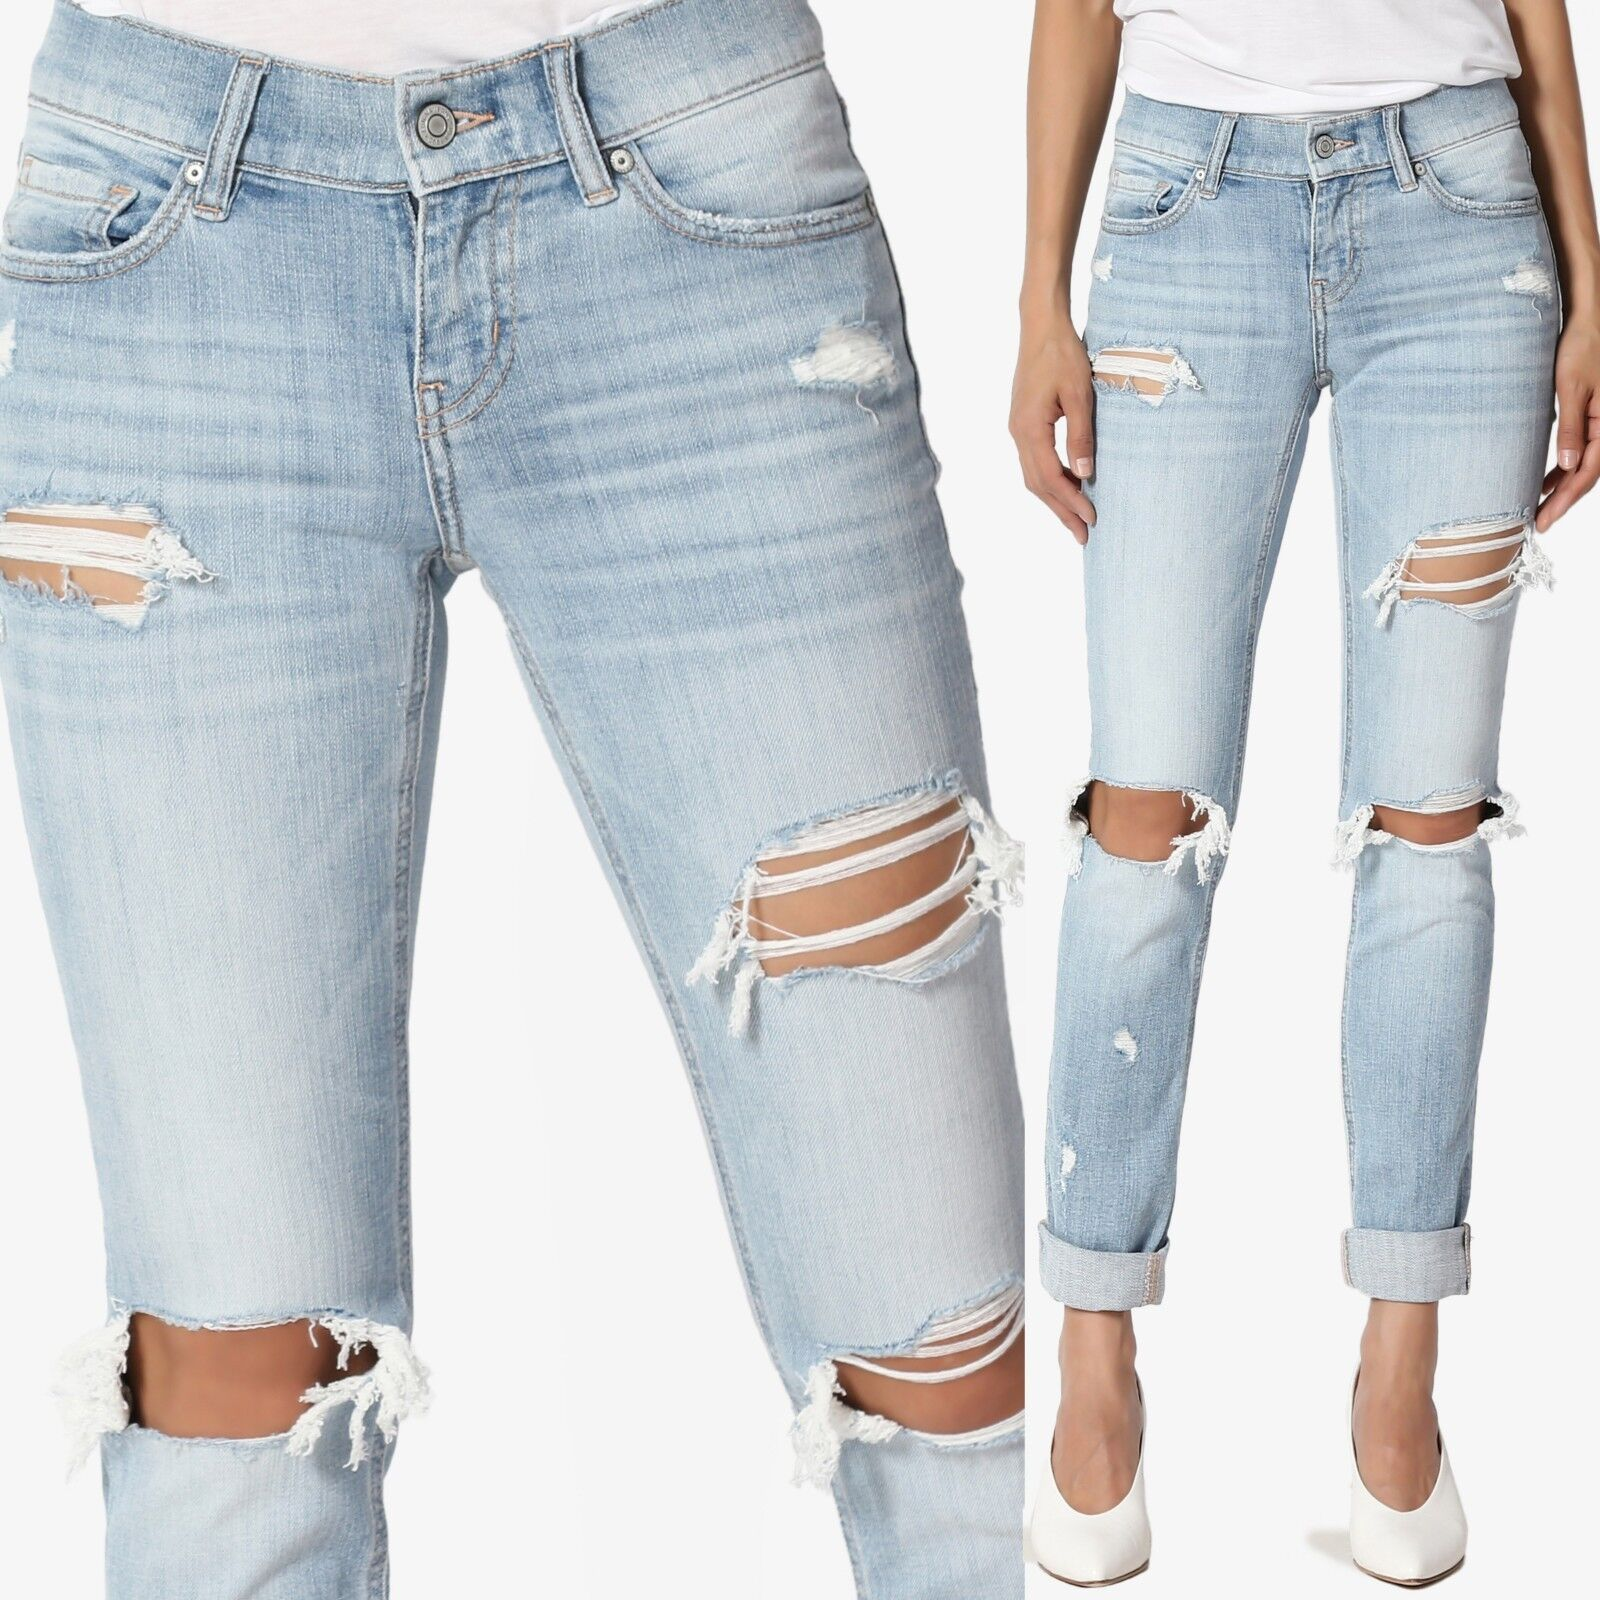 TheMogan Distressed Slim Straight Relaxed Roll Up Crop Jeans in Light bluee Wash